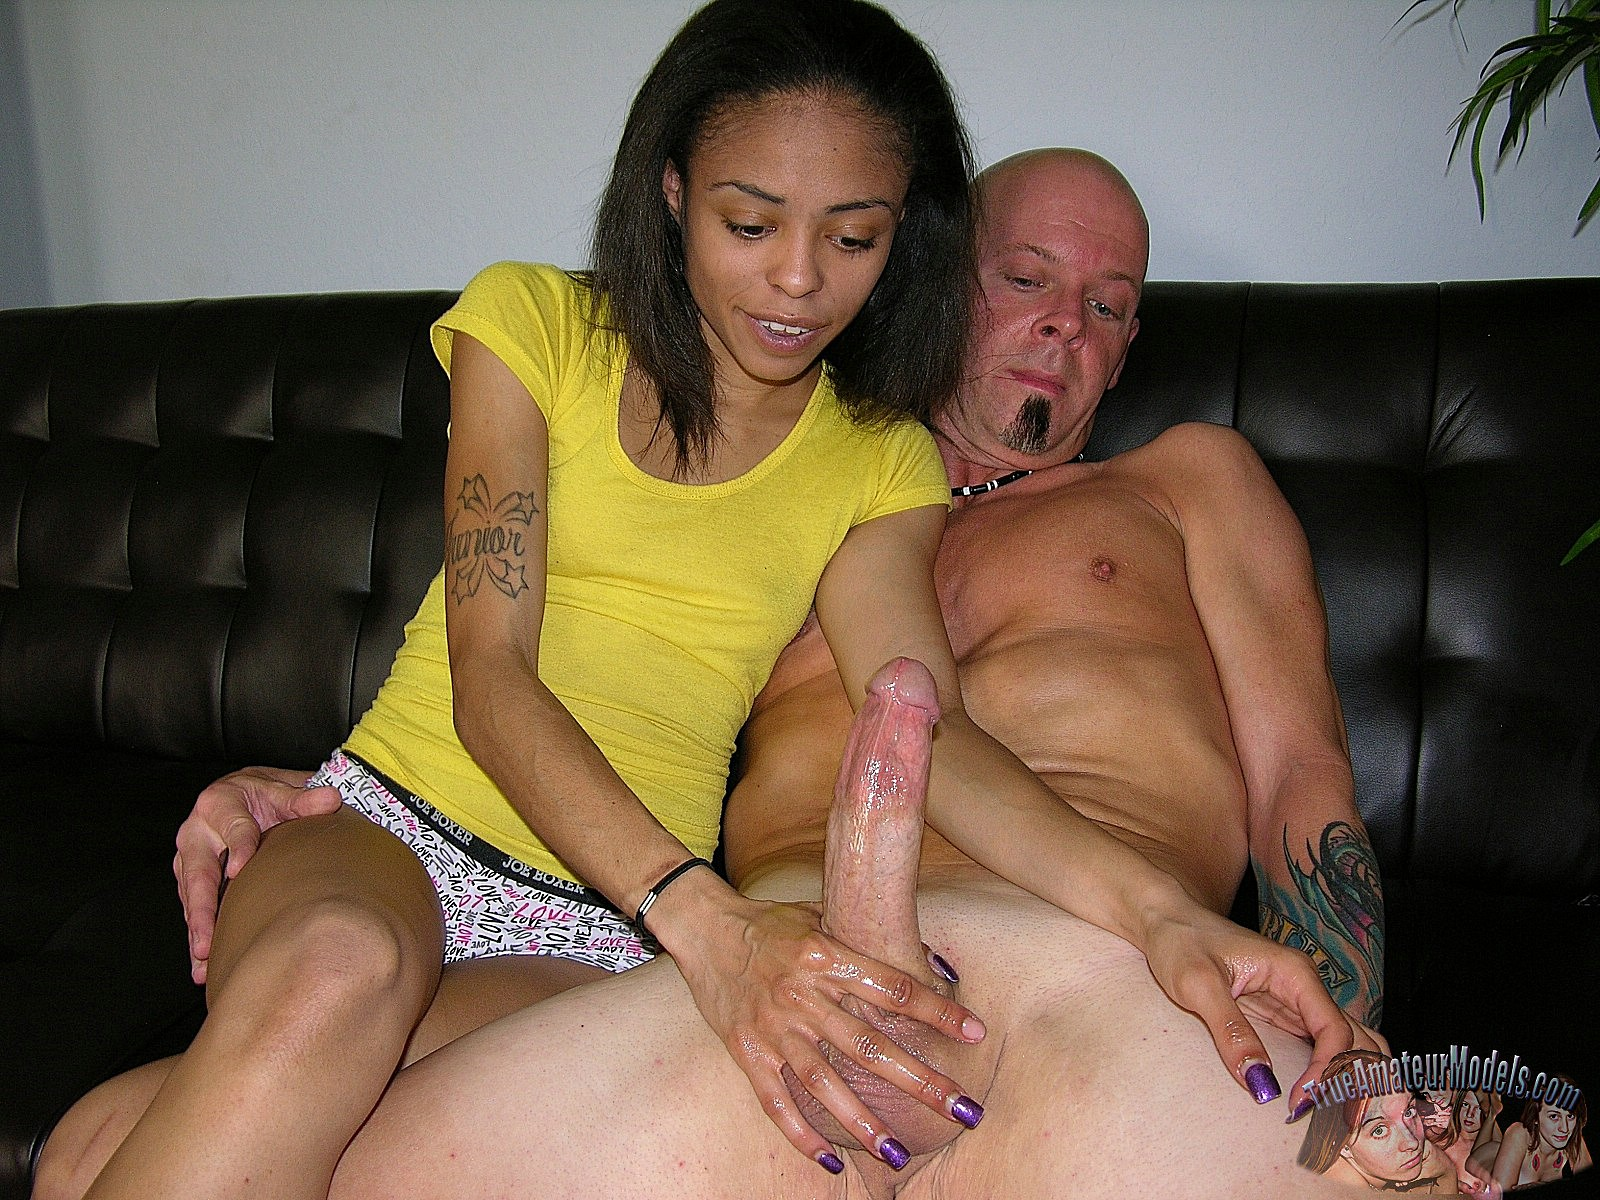 Share handjob cumshot big cock ass black think